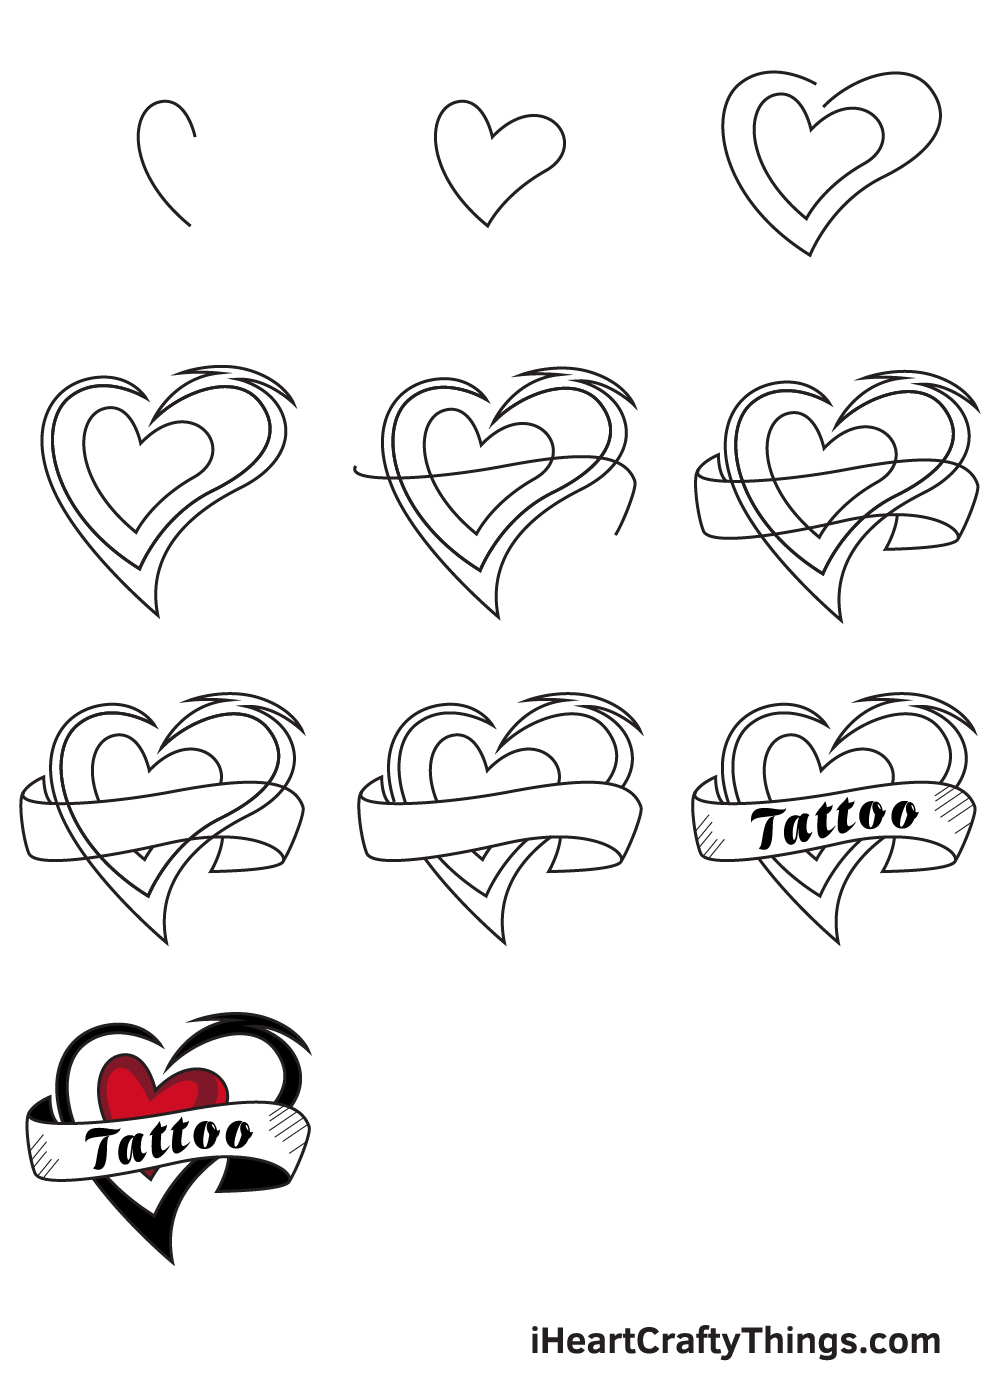 drawing tattoo in 9 steps